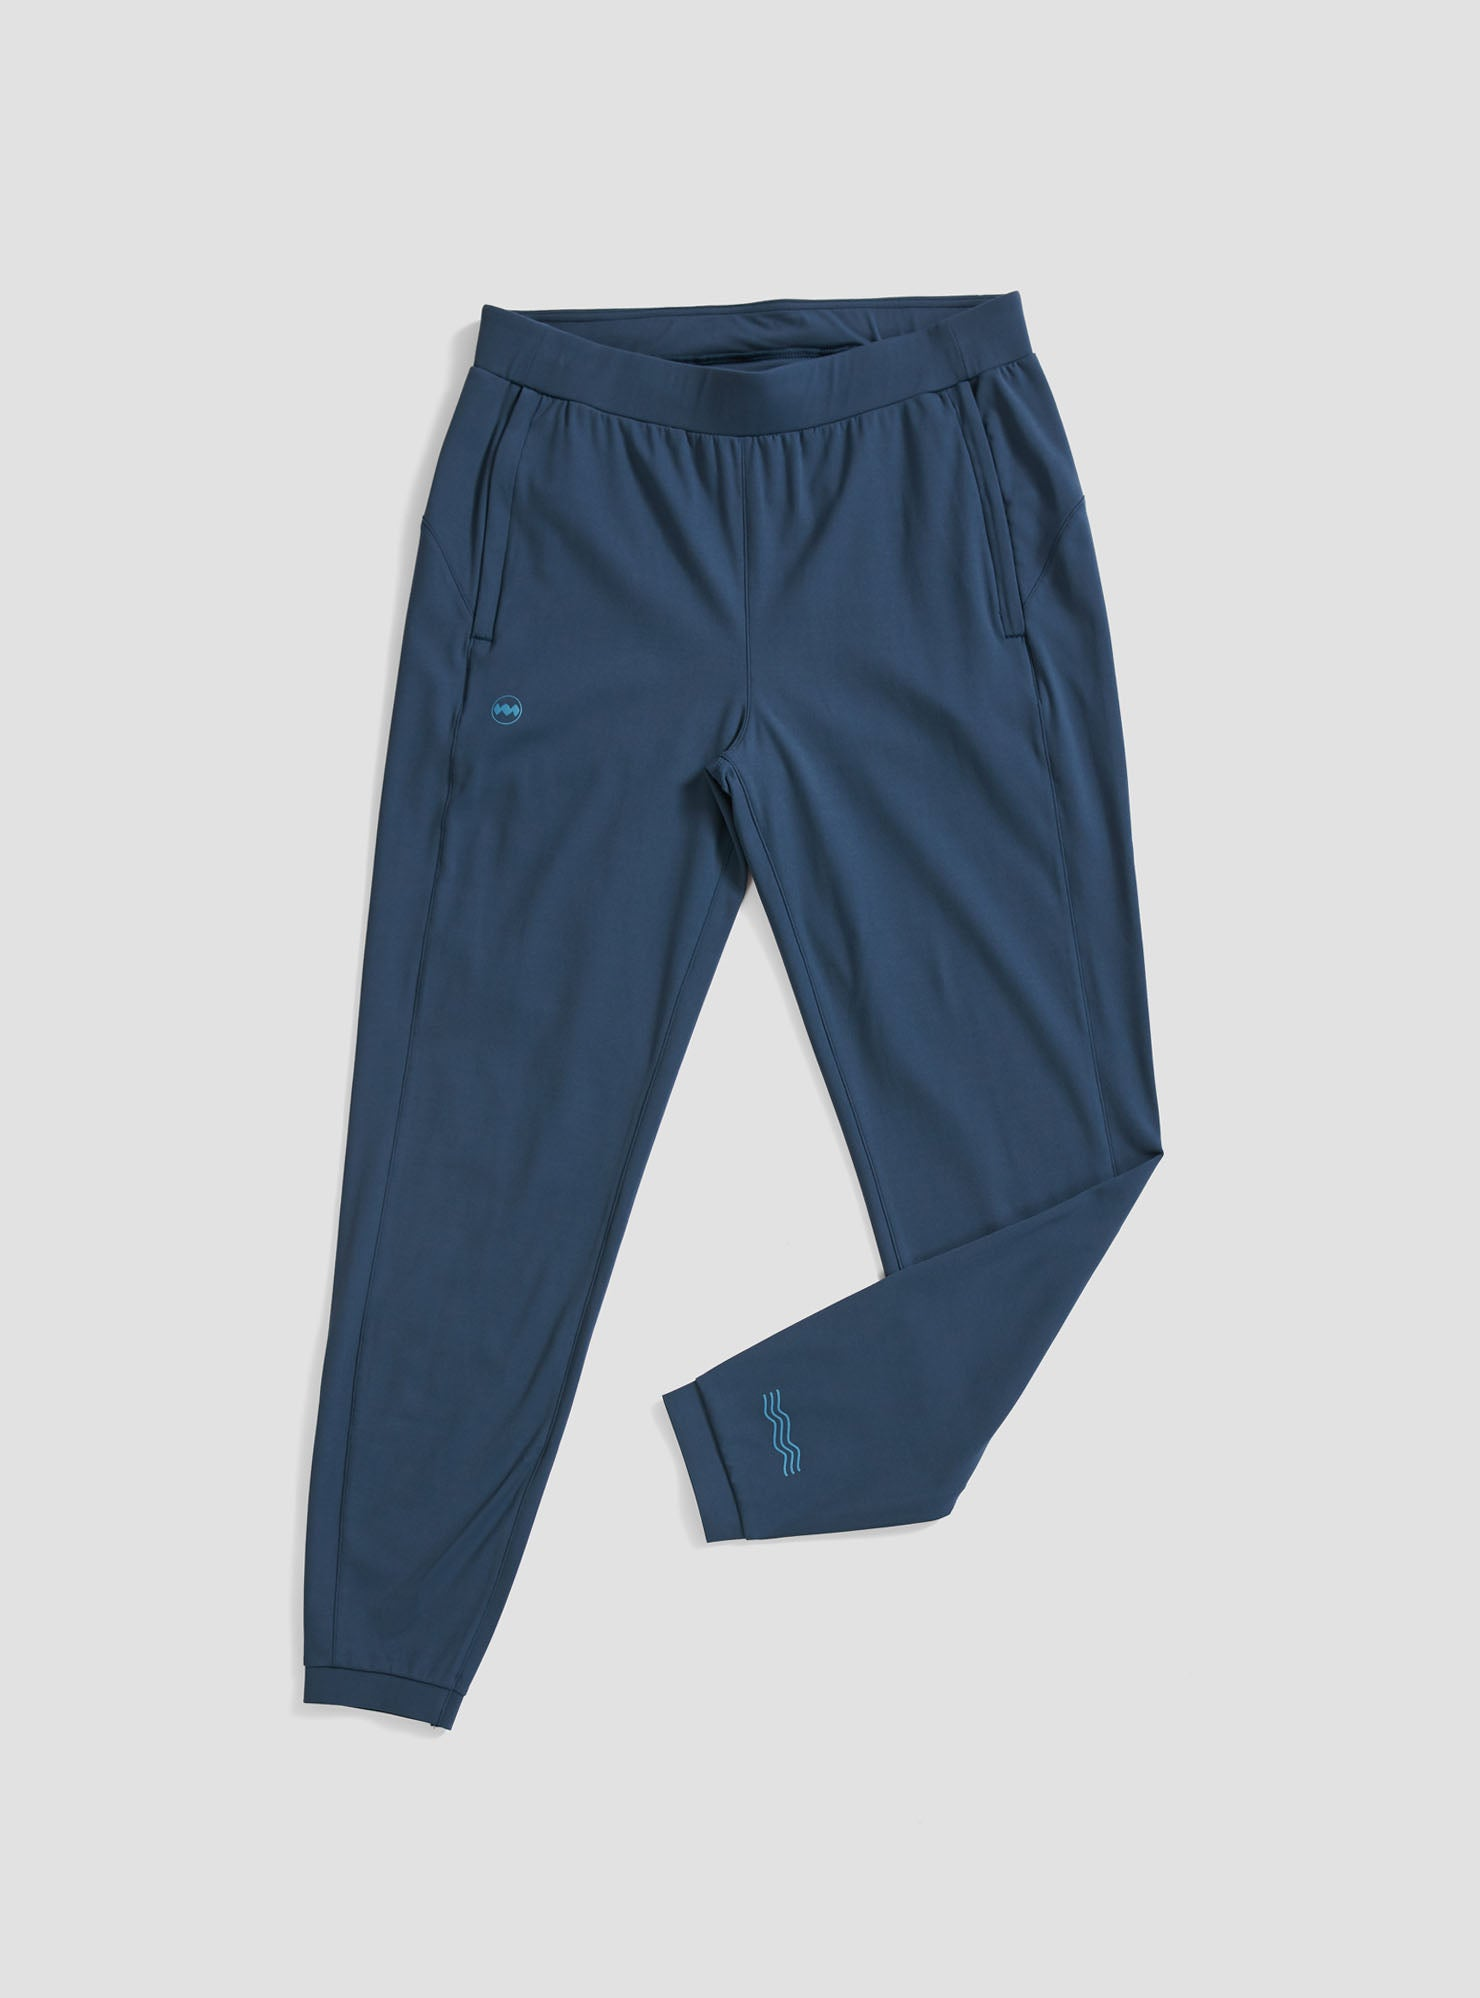 W's Mercury Track Pant in Nightshadow